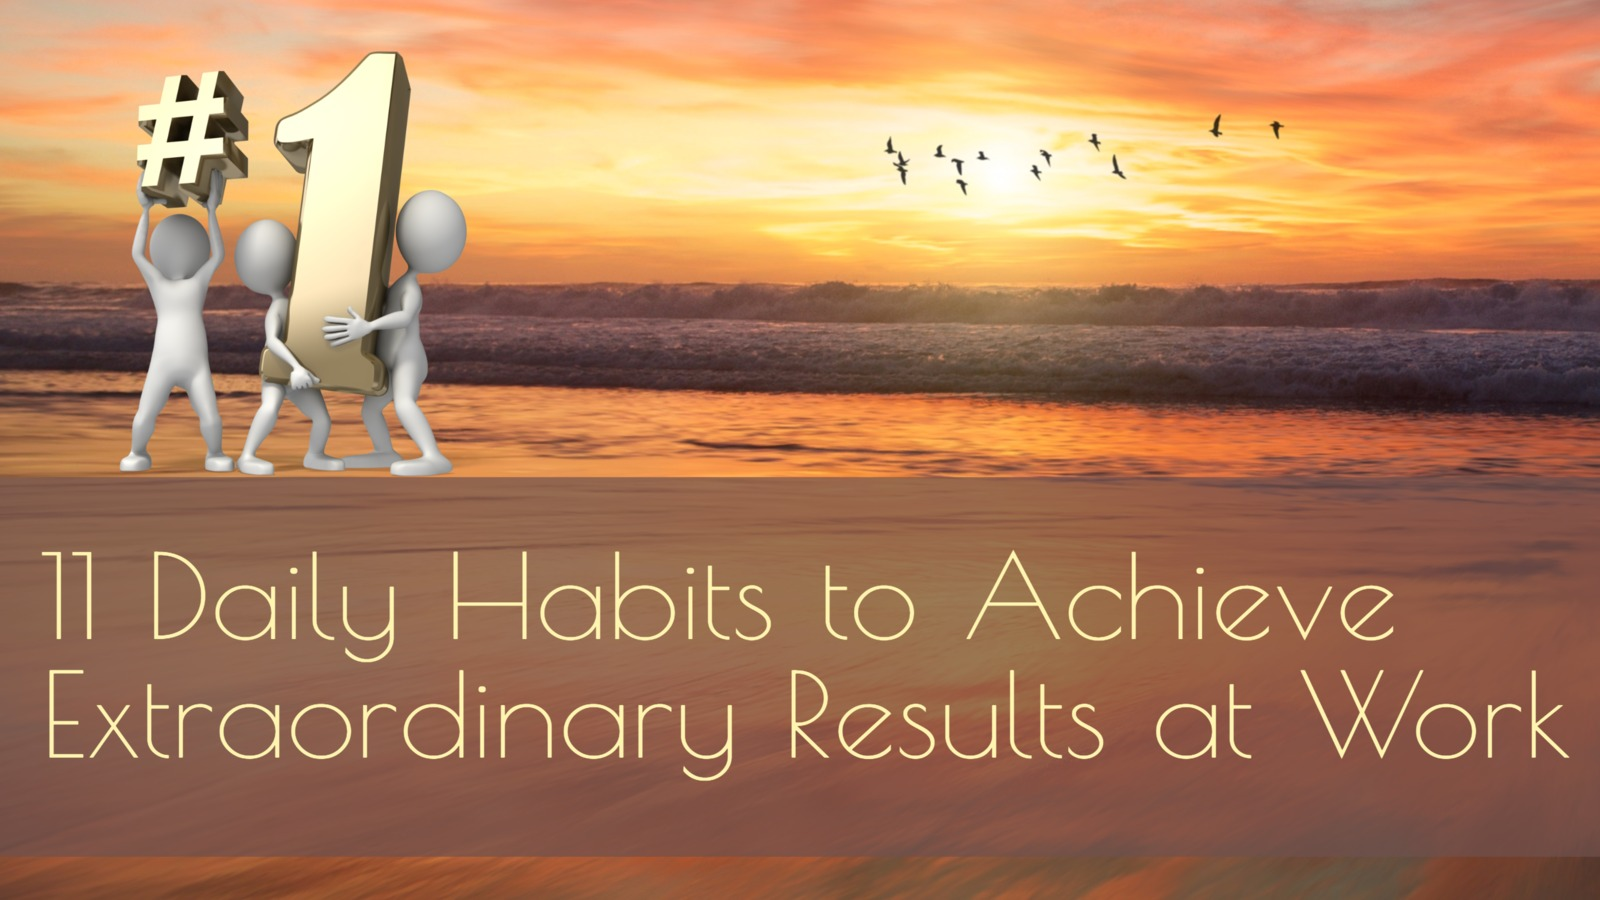 11 Daily Habits to Achieve Extraordinary Results at Work